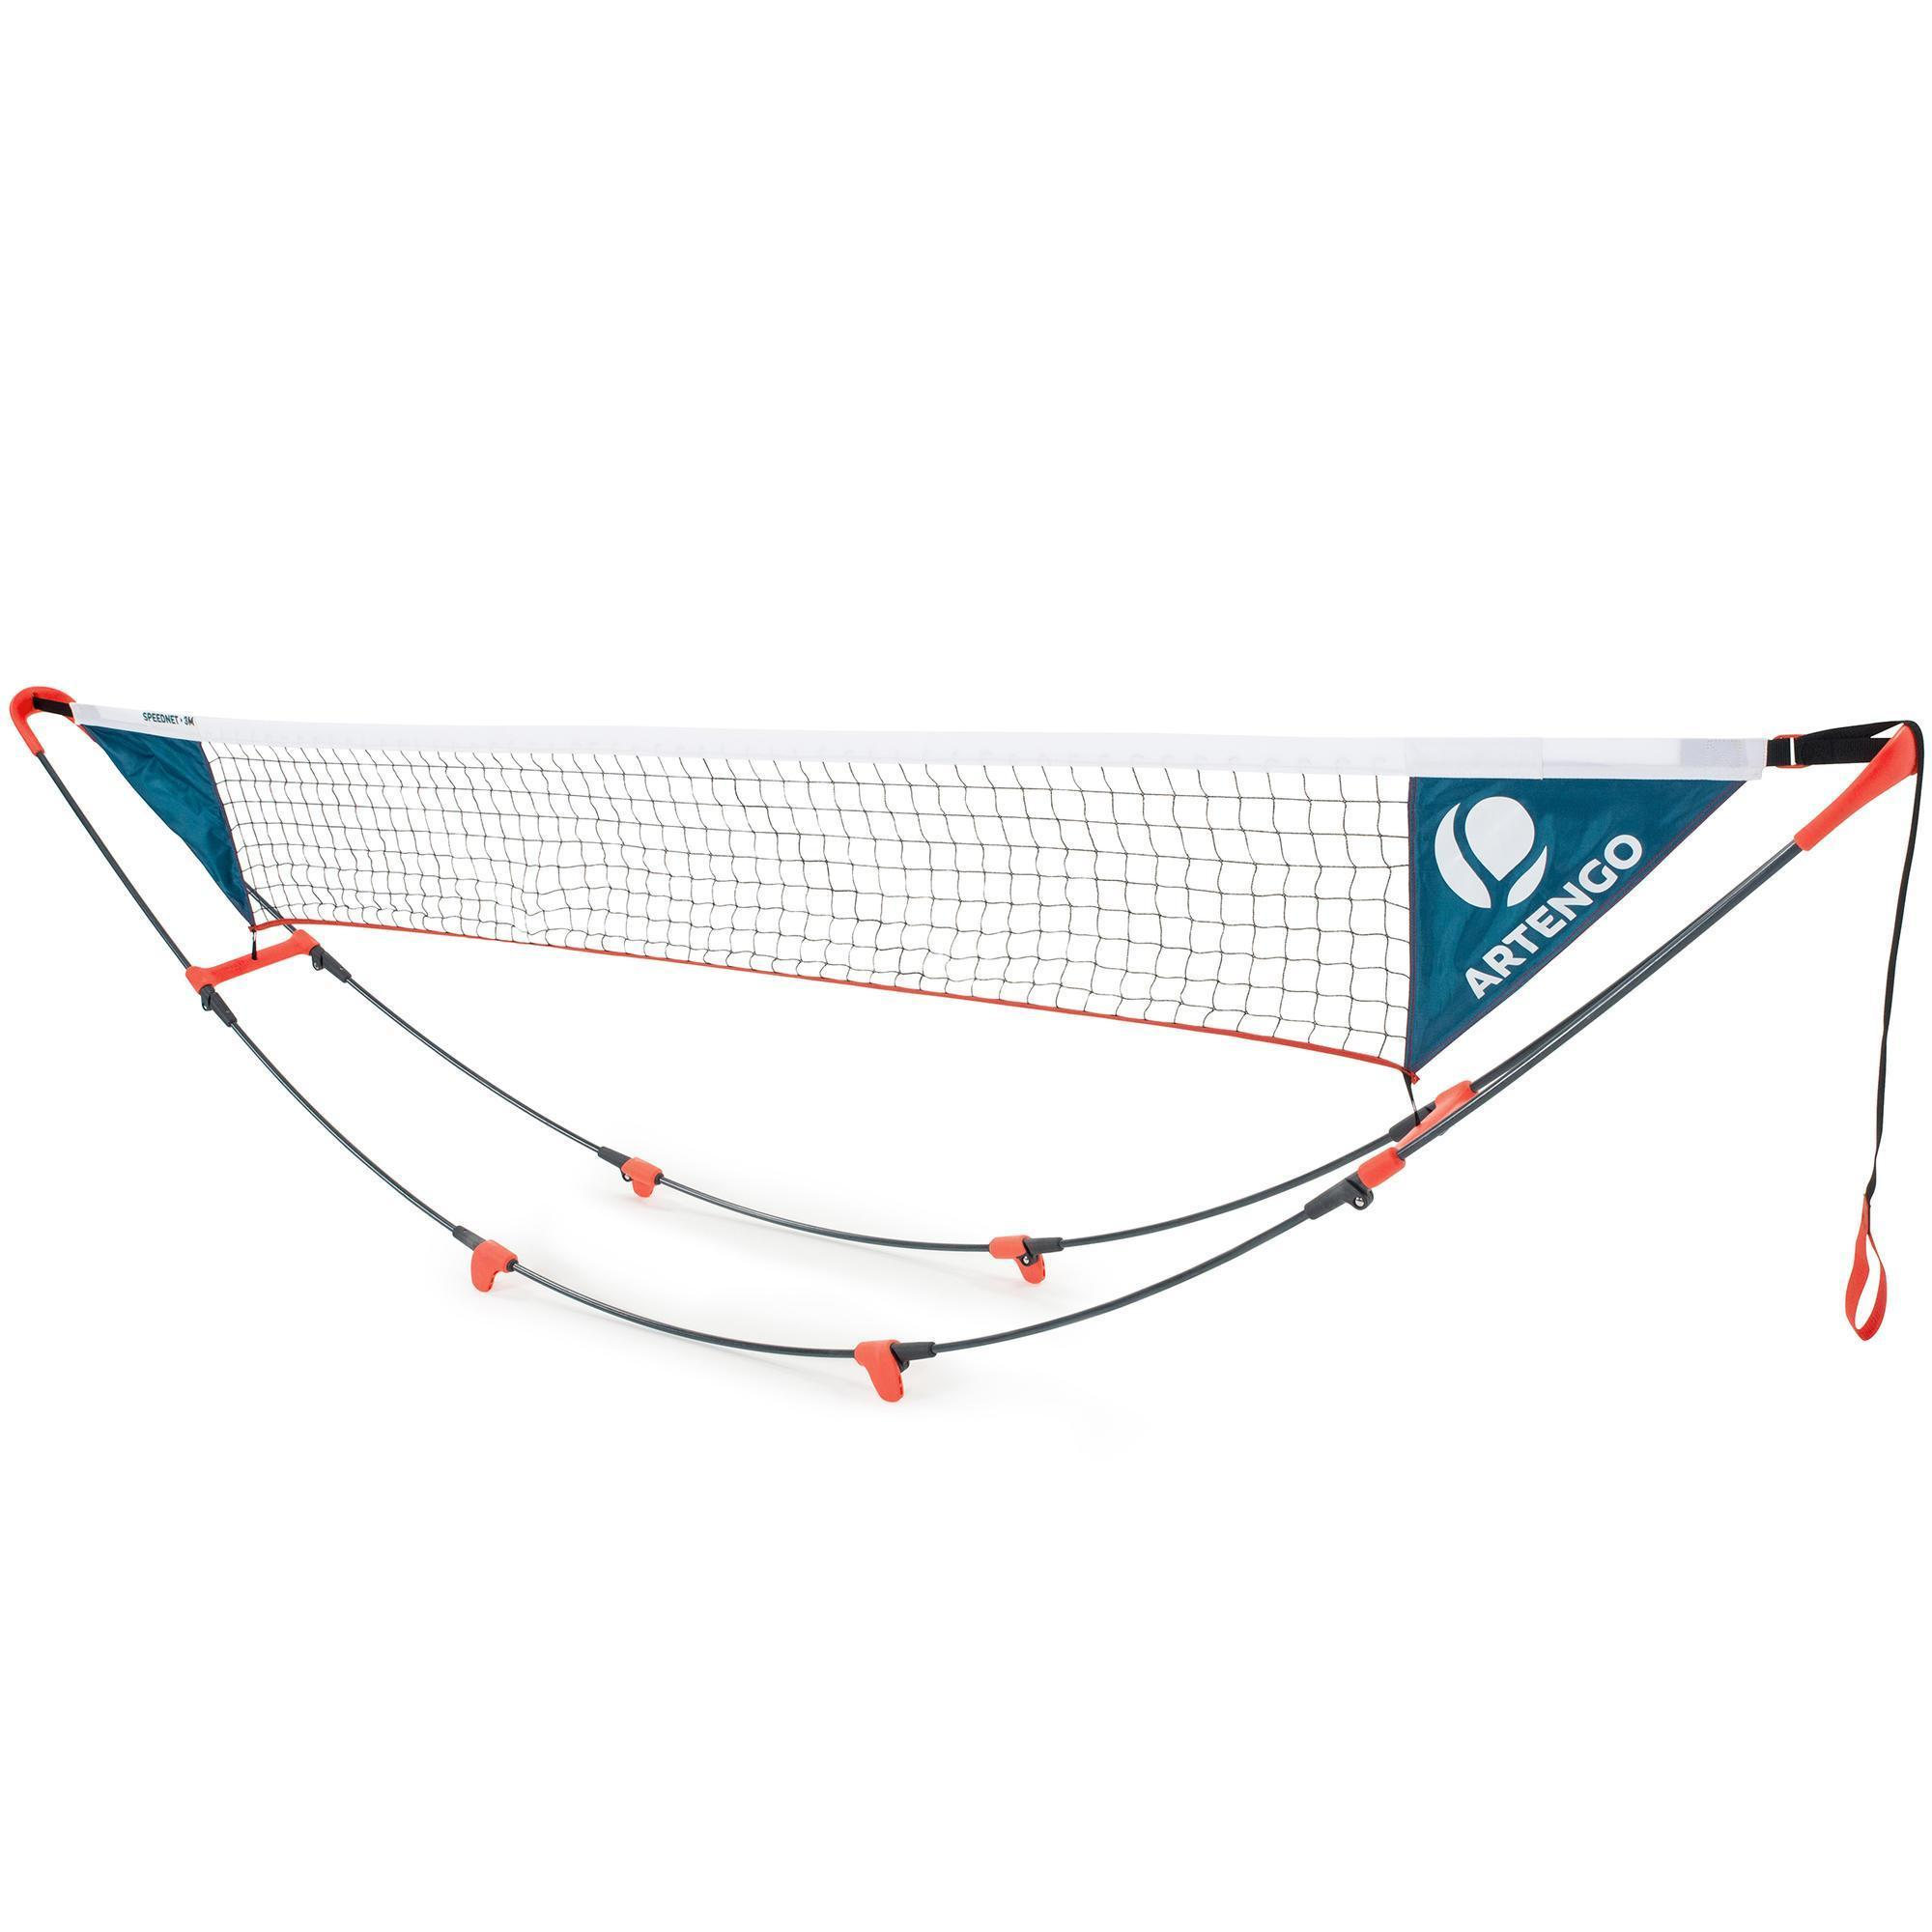 Filet de tennis 3metres rapide et modulable en hauteur artengo - Hauteur filet tennis de table ...